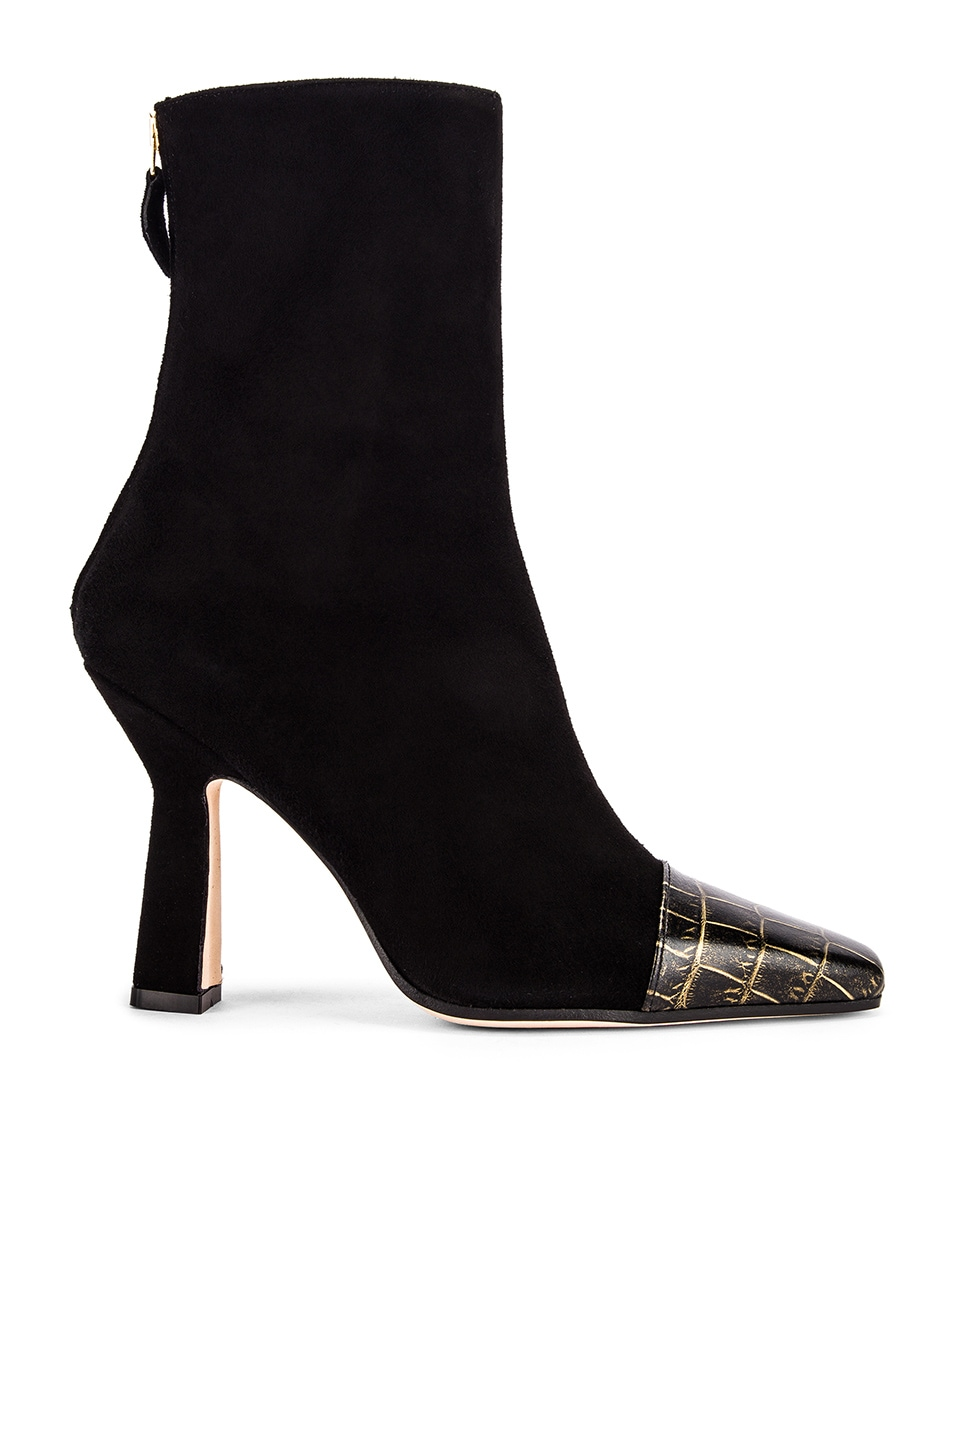 Image 1 of Paris Texas Suede and Croco Square Toe Ankle Boot in Black